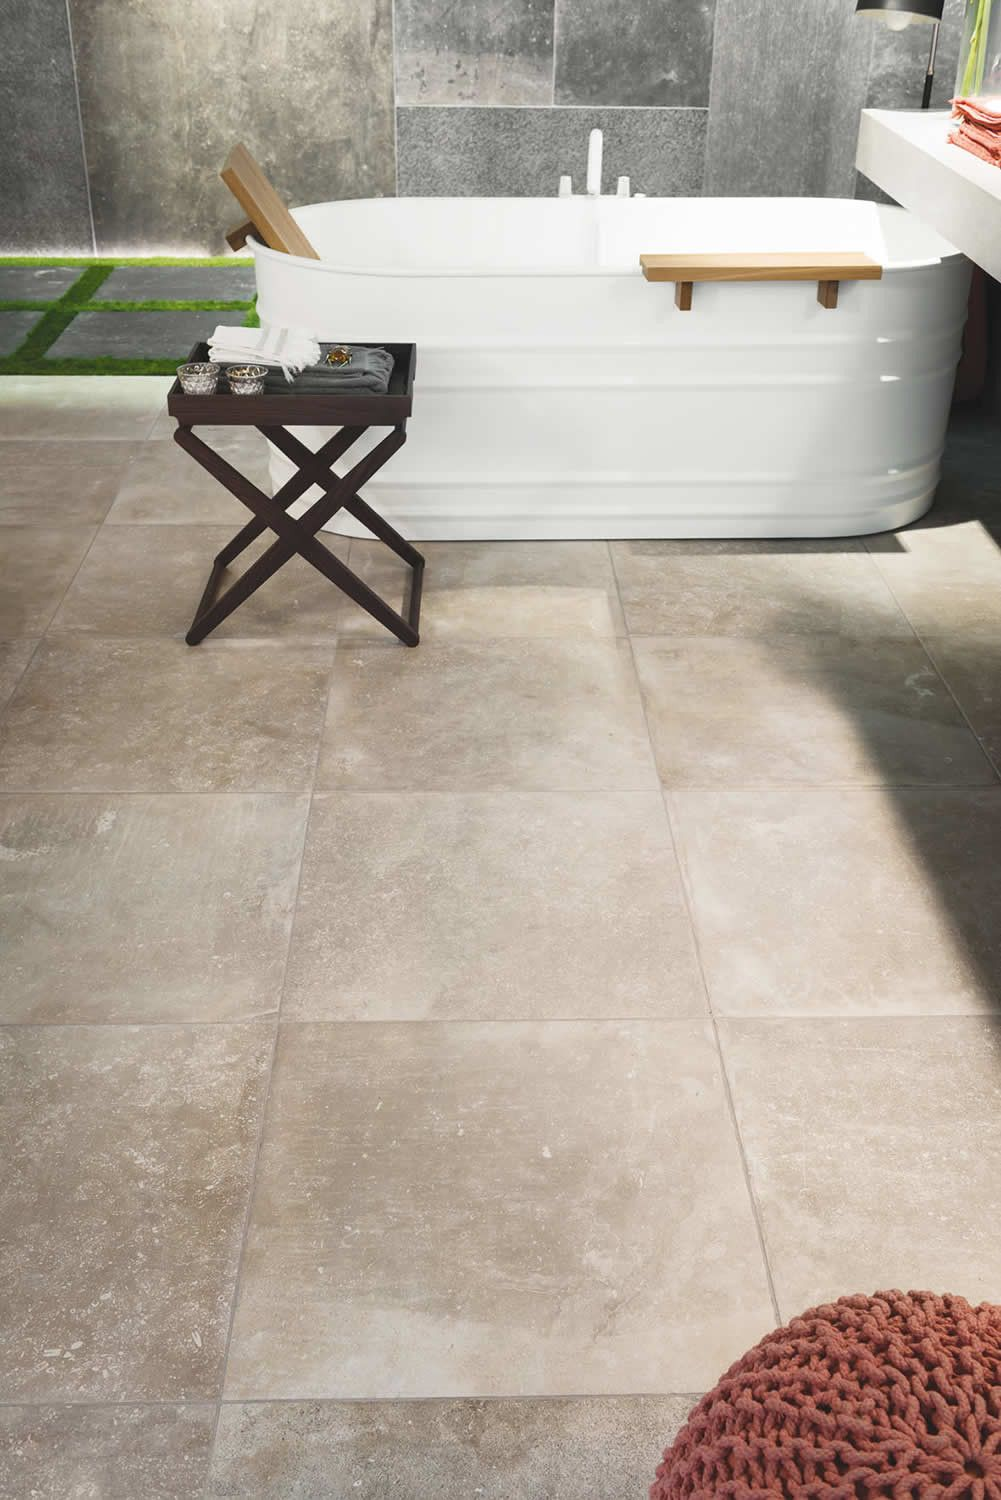 Kronos carriere bruges 80x80 cm 8417 porcelain stoneware available on all the porcelain stoneware flooring by kronos carriere at the best price guaranteed discover kronos carriere bruges vintage cm 8436 dailygadgetfo Choice Image